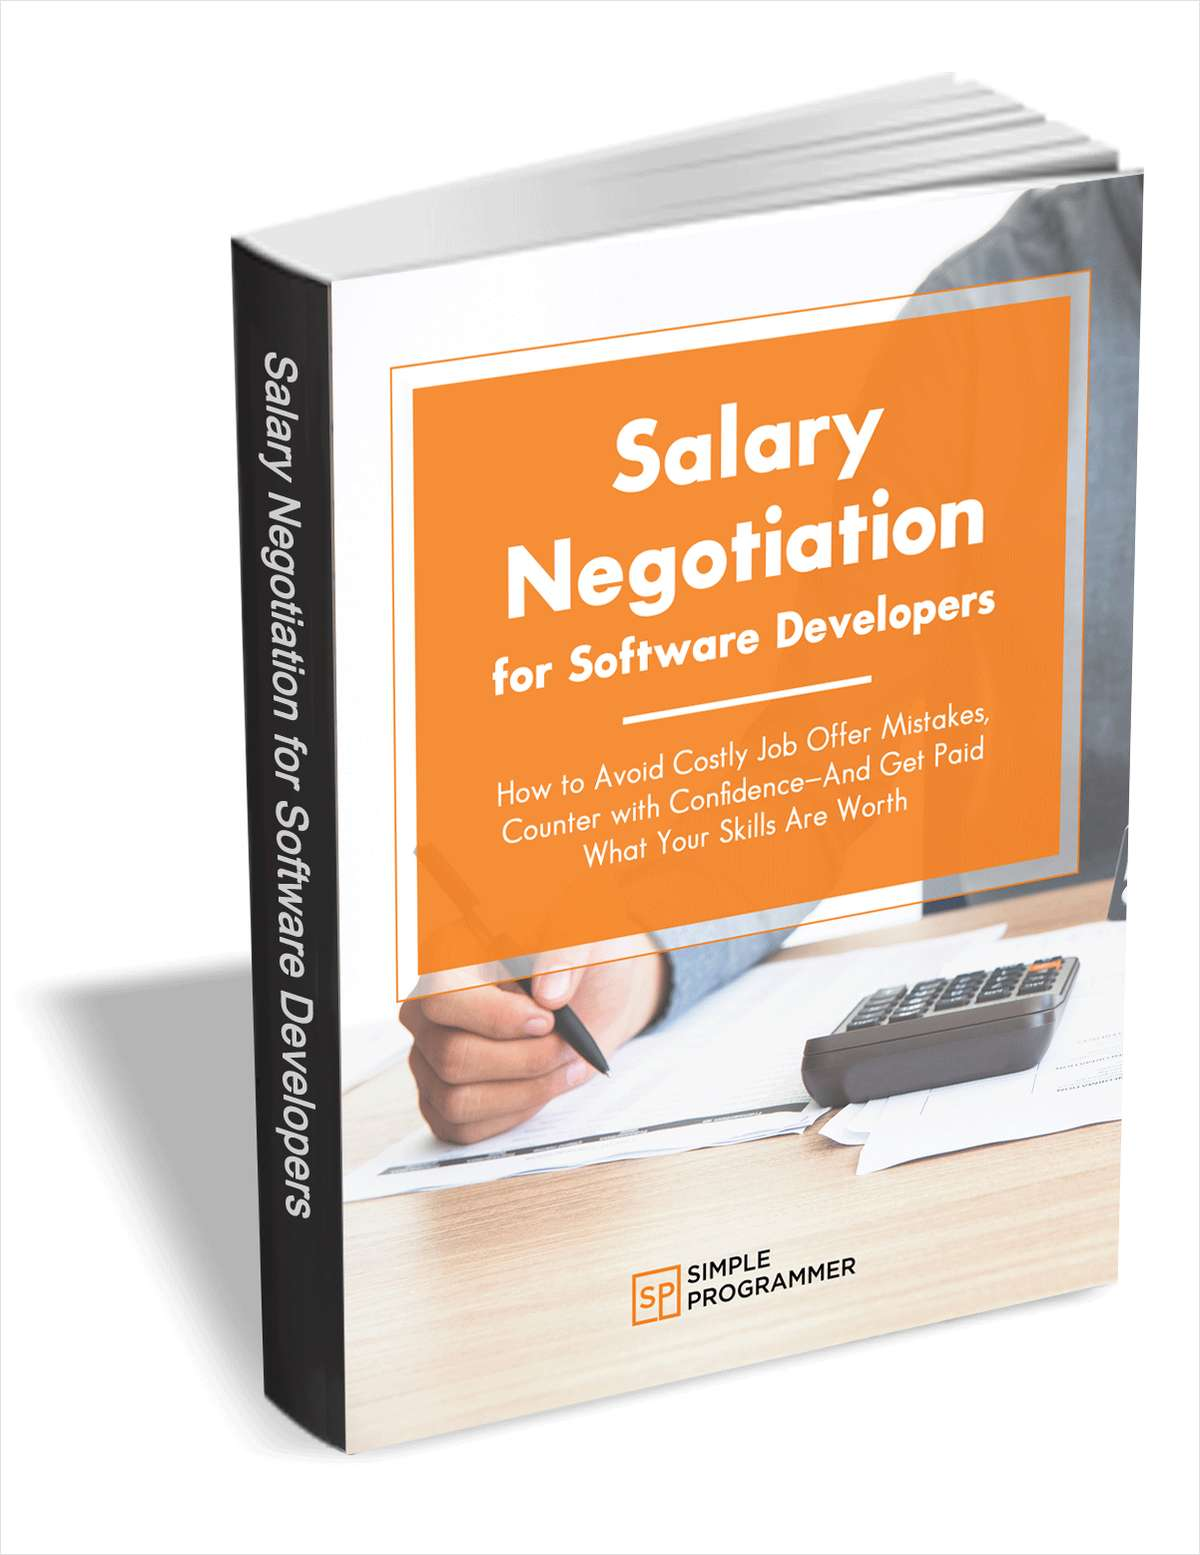 Salary Negotiation for Software Developers